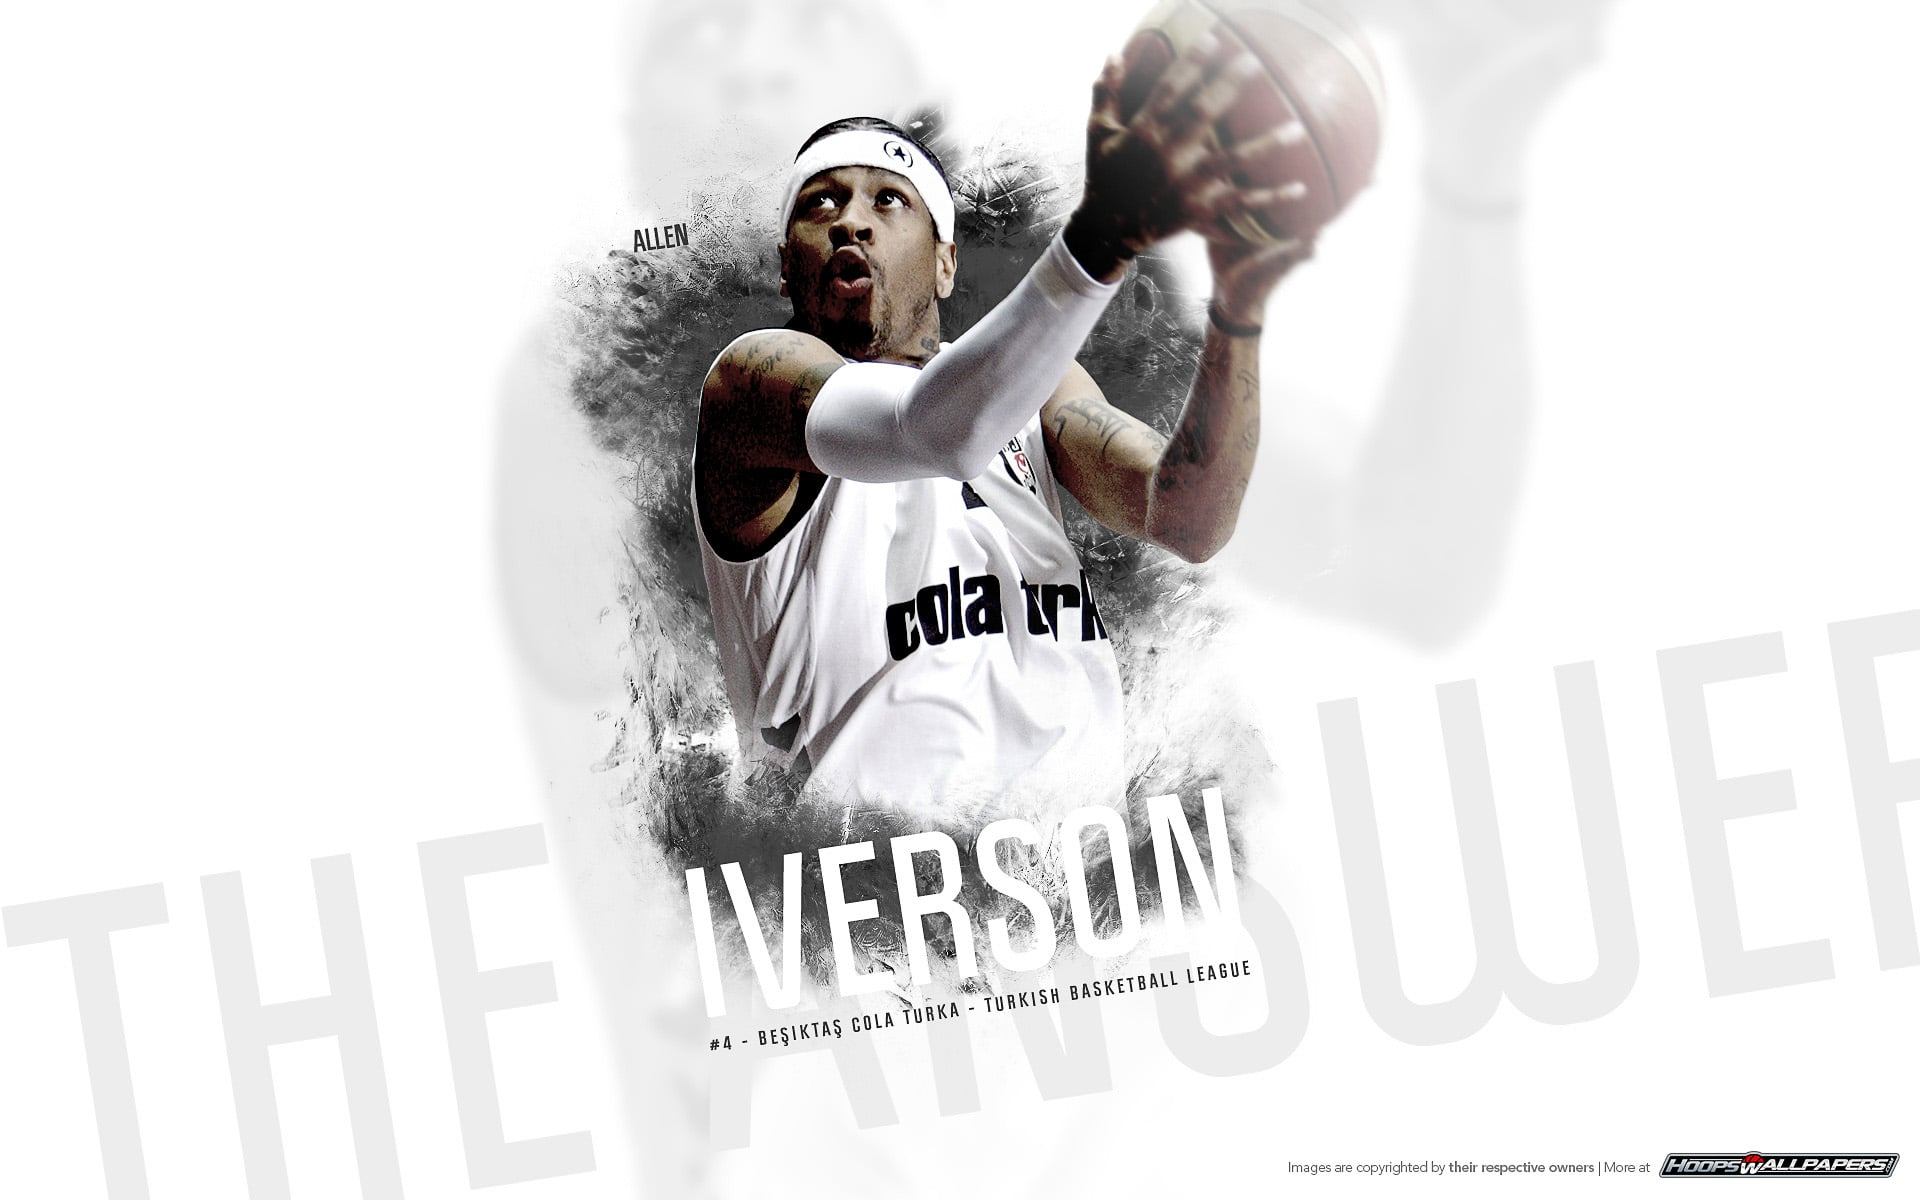 Car Wallpaper Hd 1080p Free Download For Mobile 26 Allen Iverson Wallpapers Hd Free Download